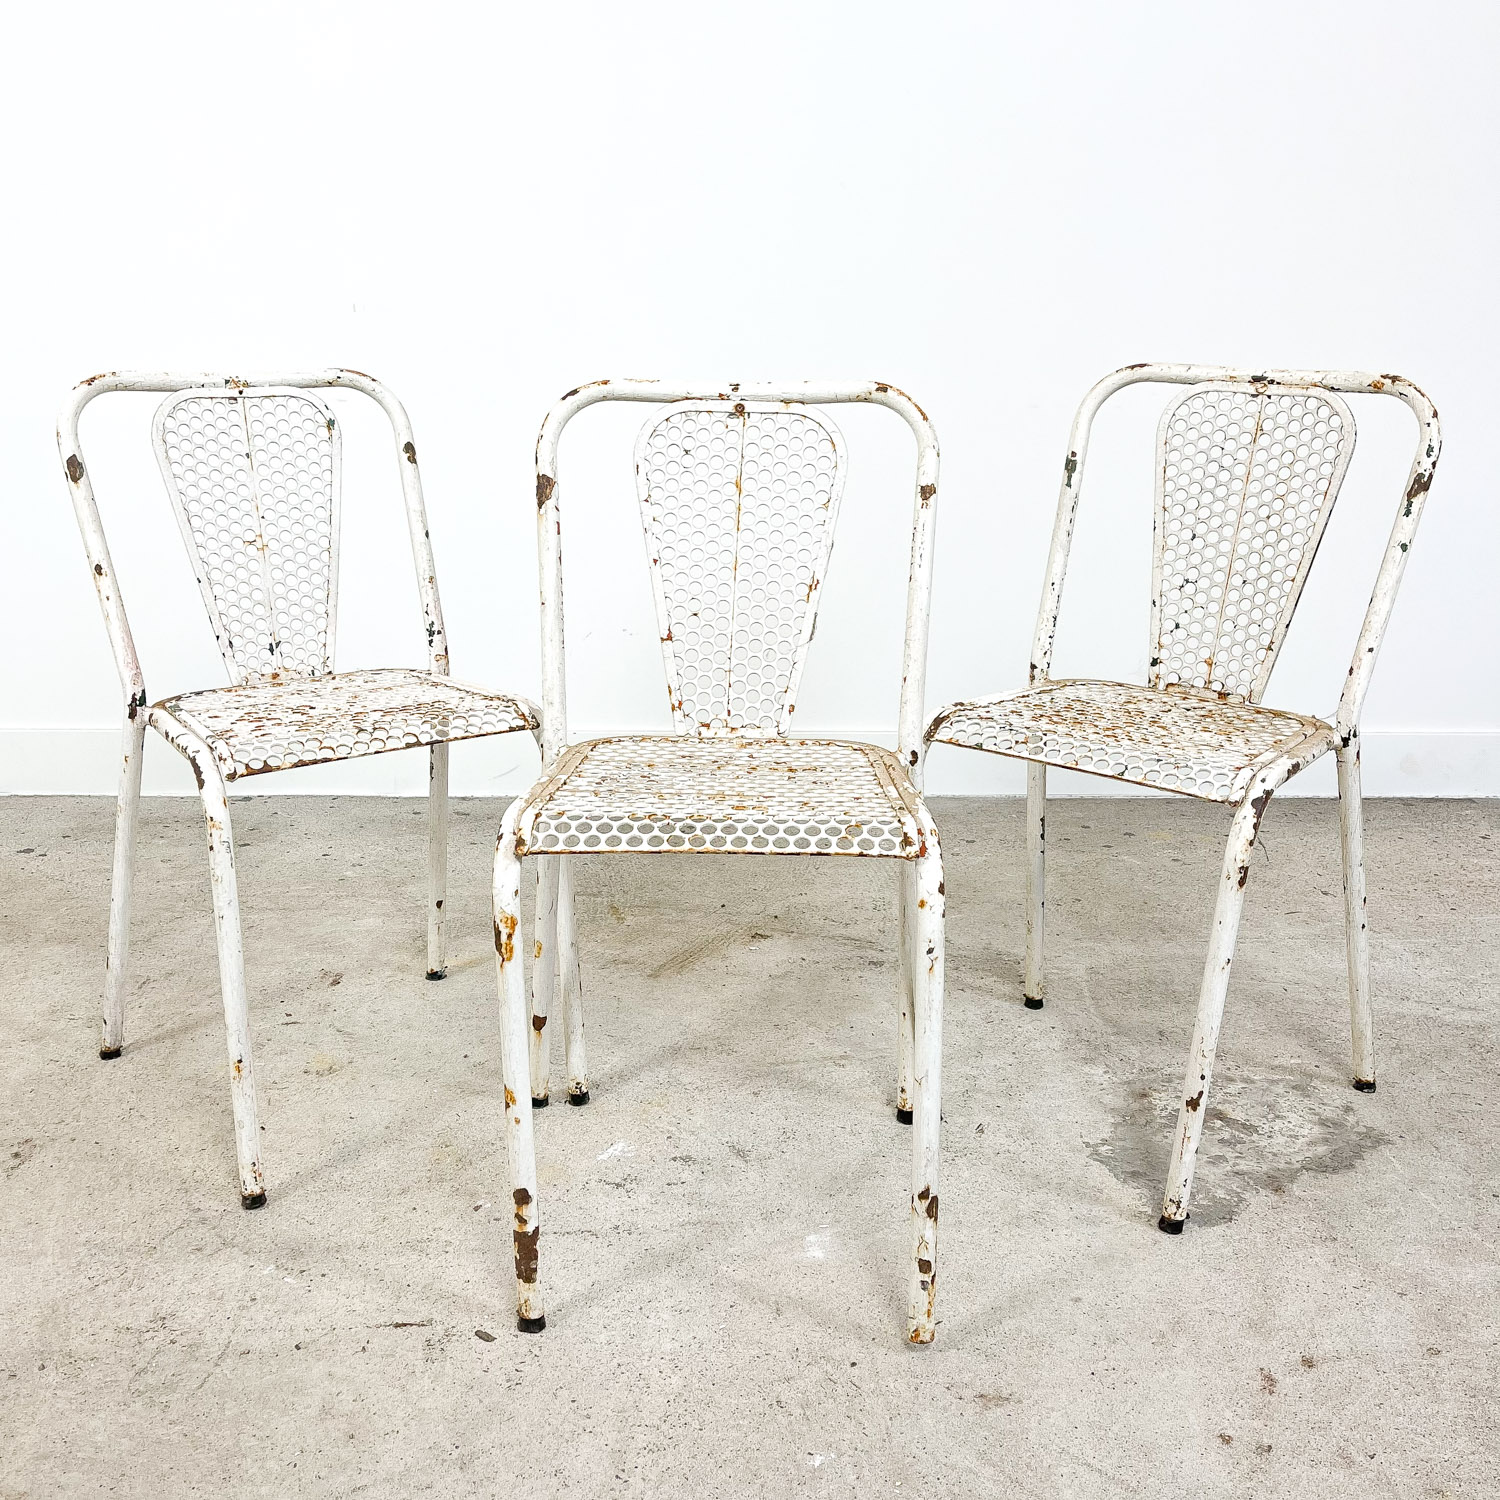 Set of three vintage industrial metal bistro chairs by Rene malaval